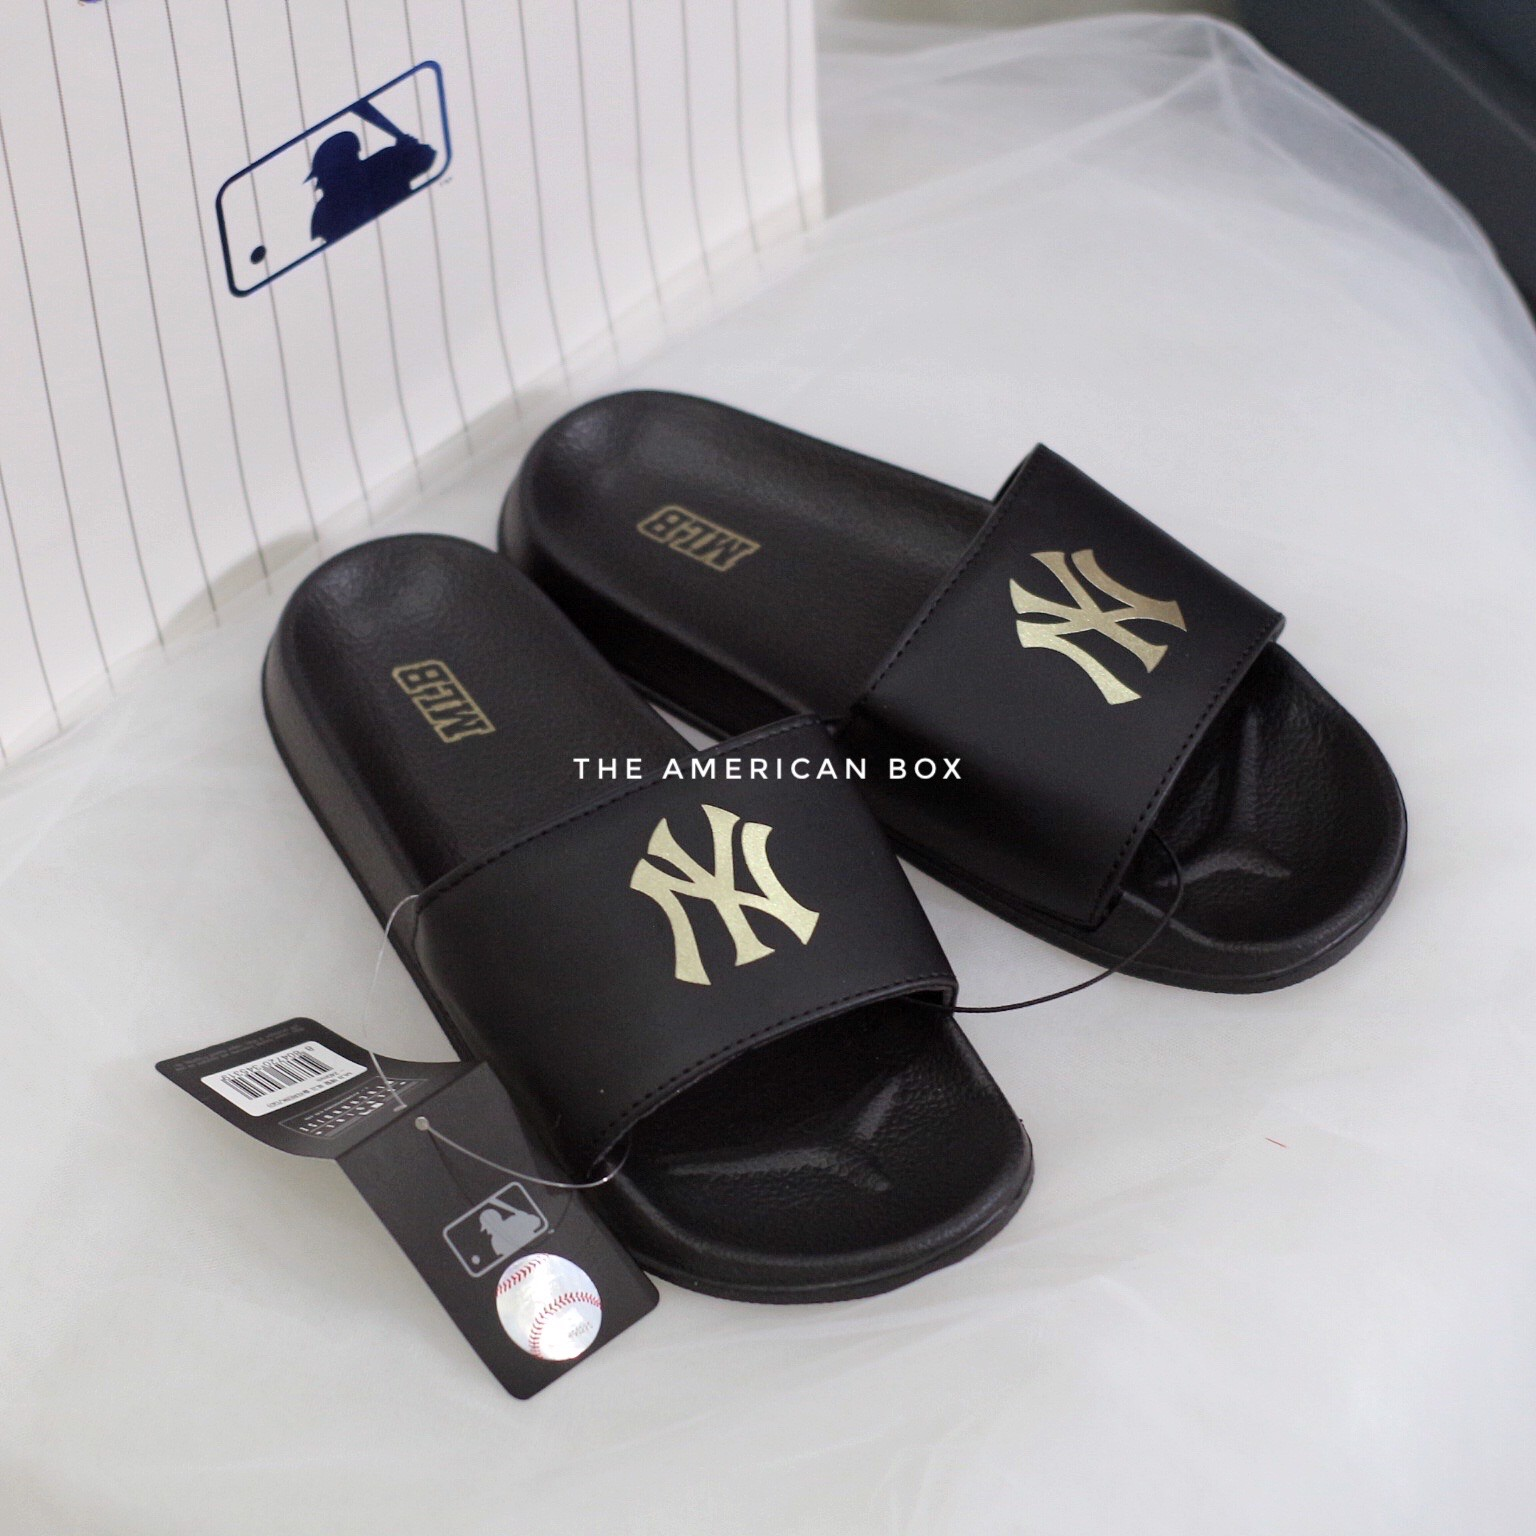 DÉP MLB AUTHENTIC LOGO SLIDES - FULL BLACK GOLD (ĐEN TEM VÀNG)